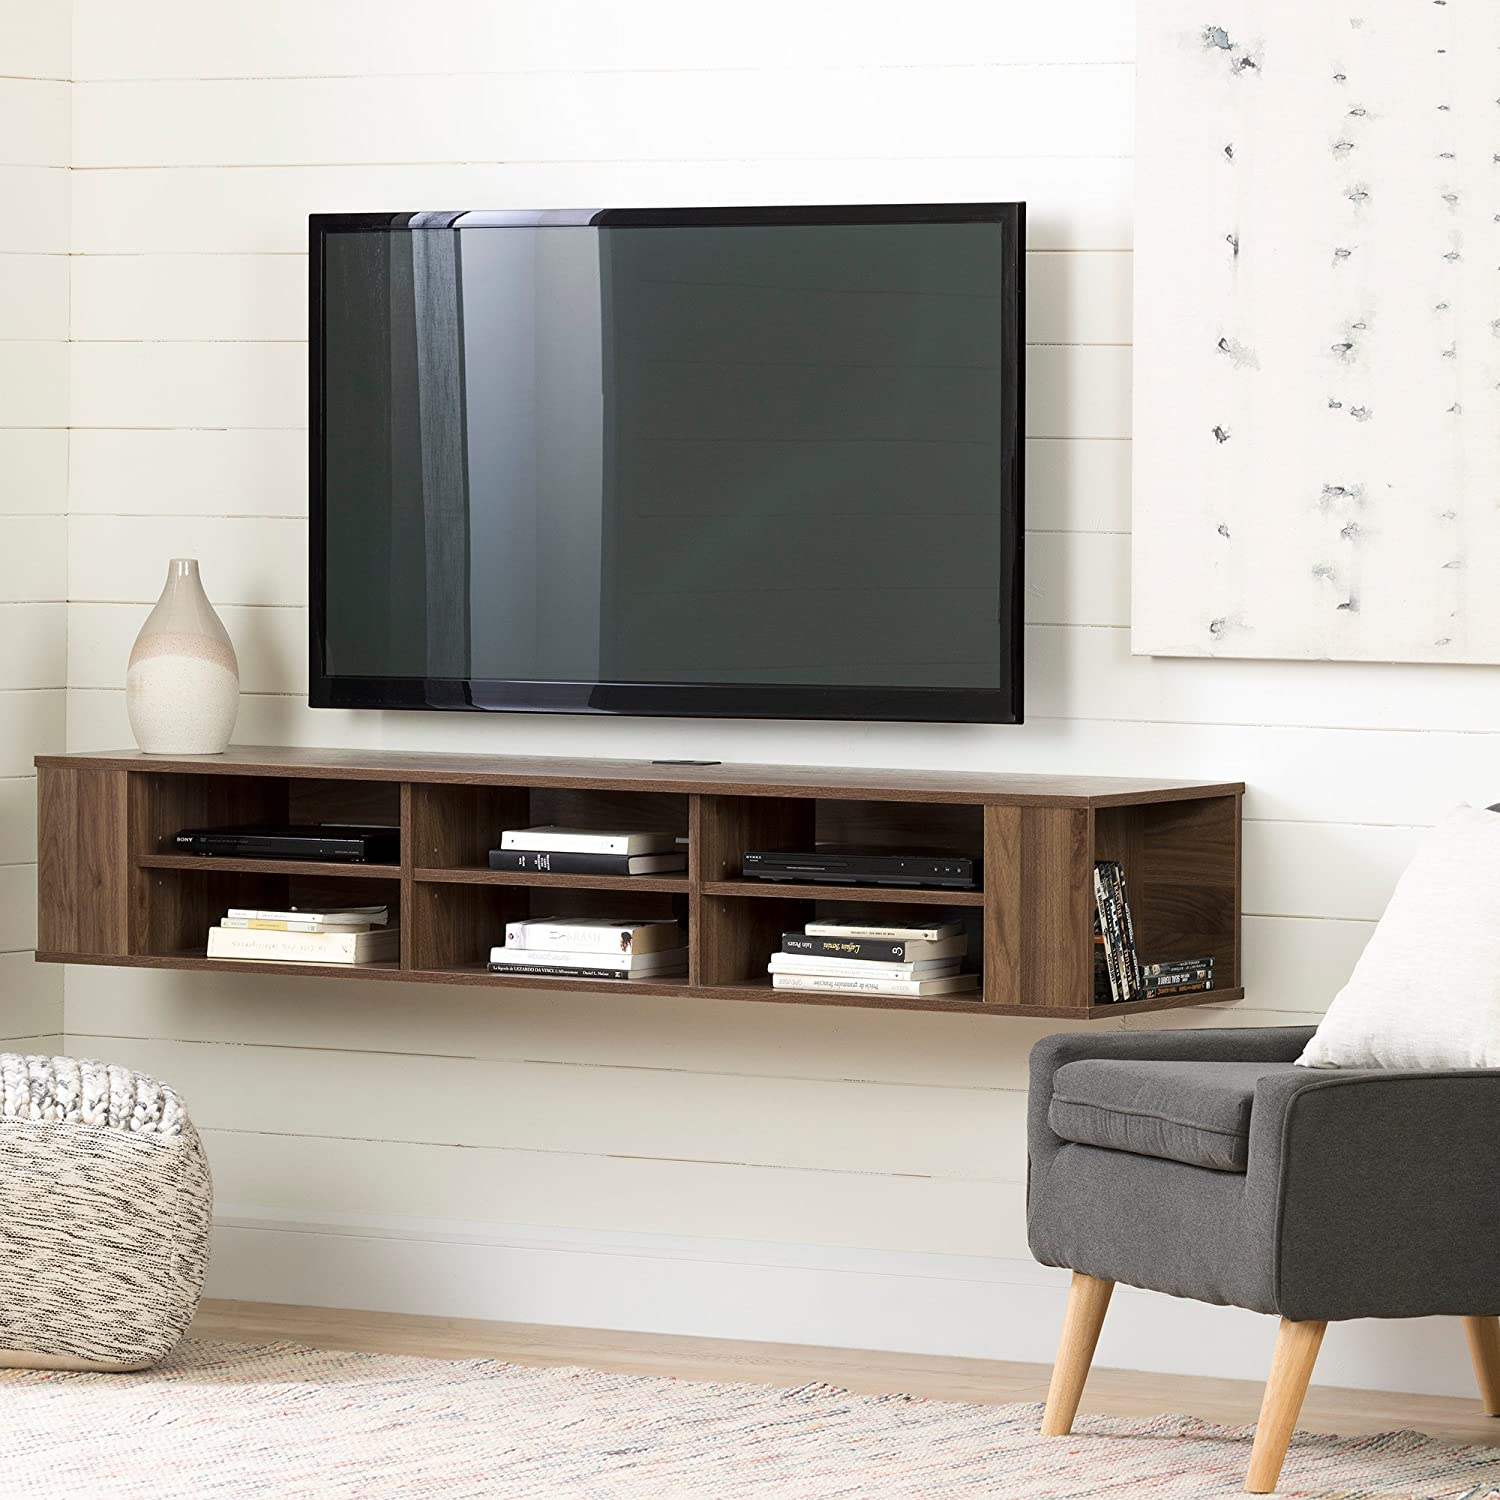 Amazoncom South Shore 11963 66 Wide Wall Mounted Media Console